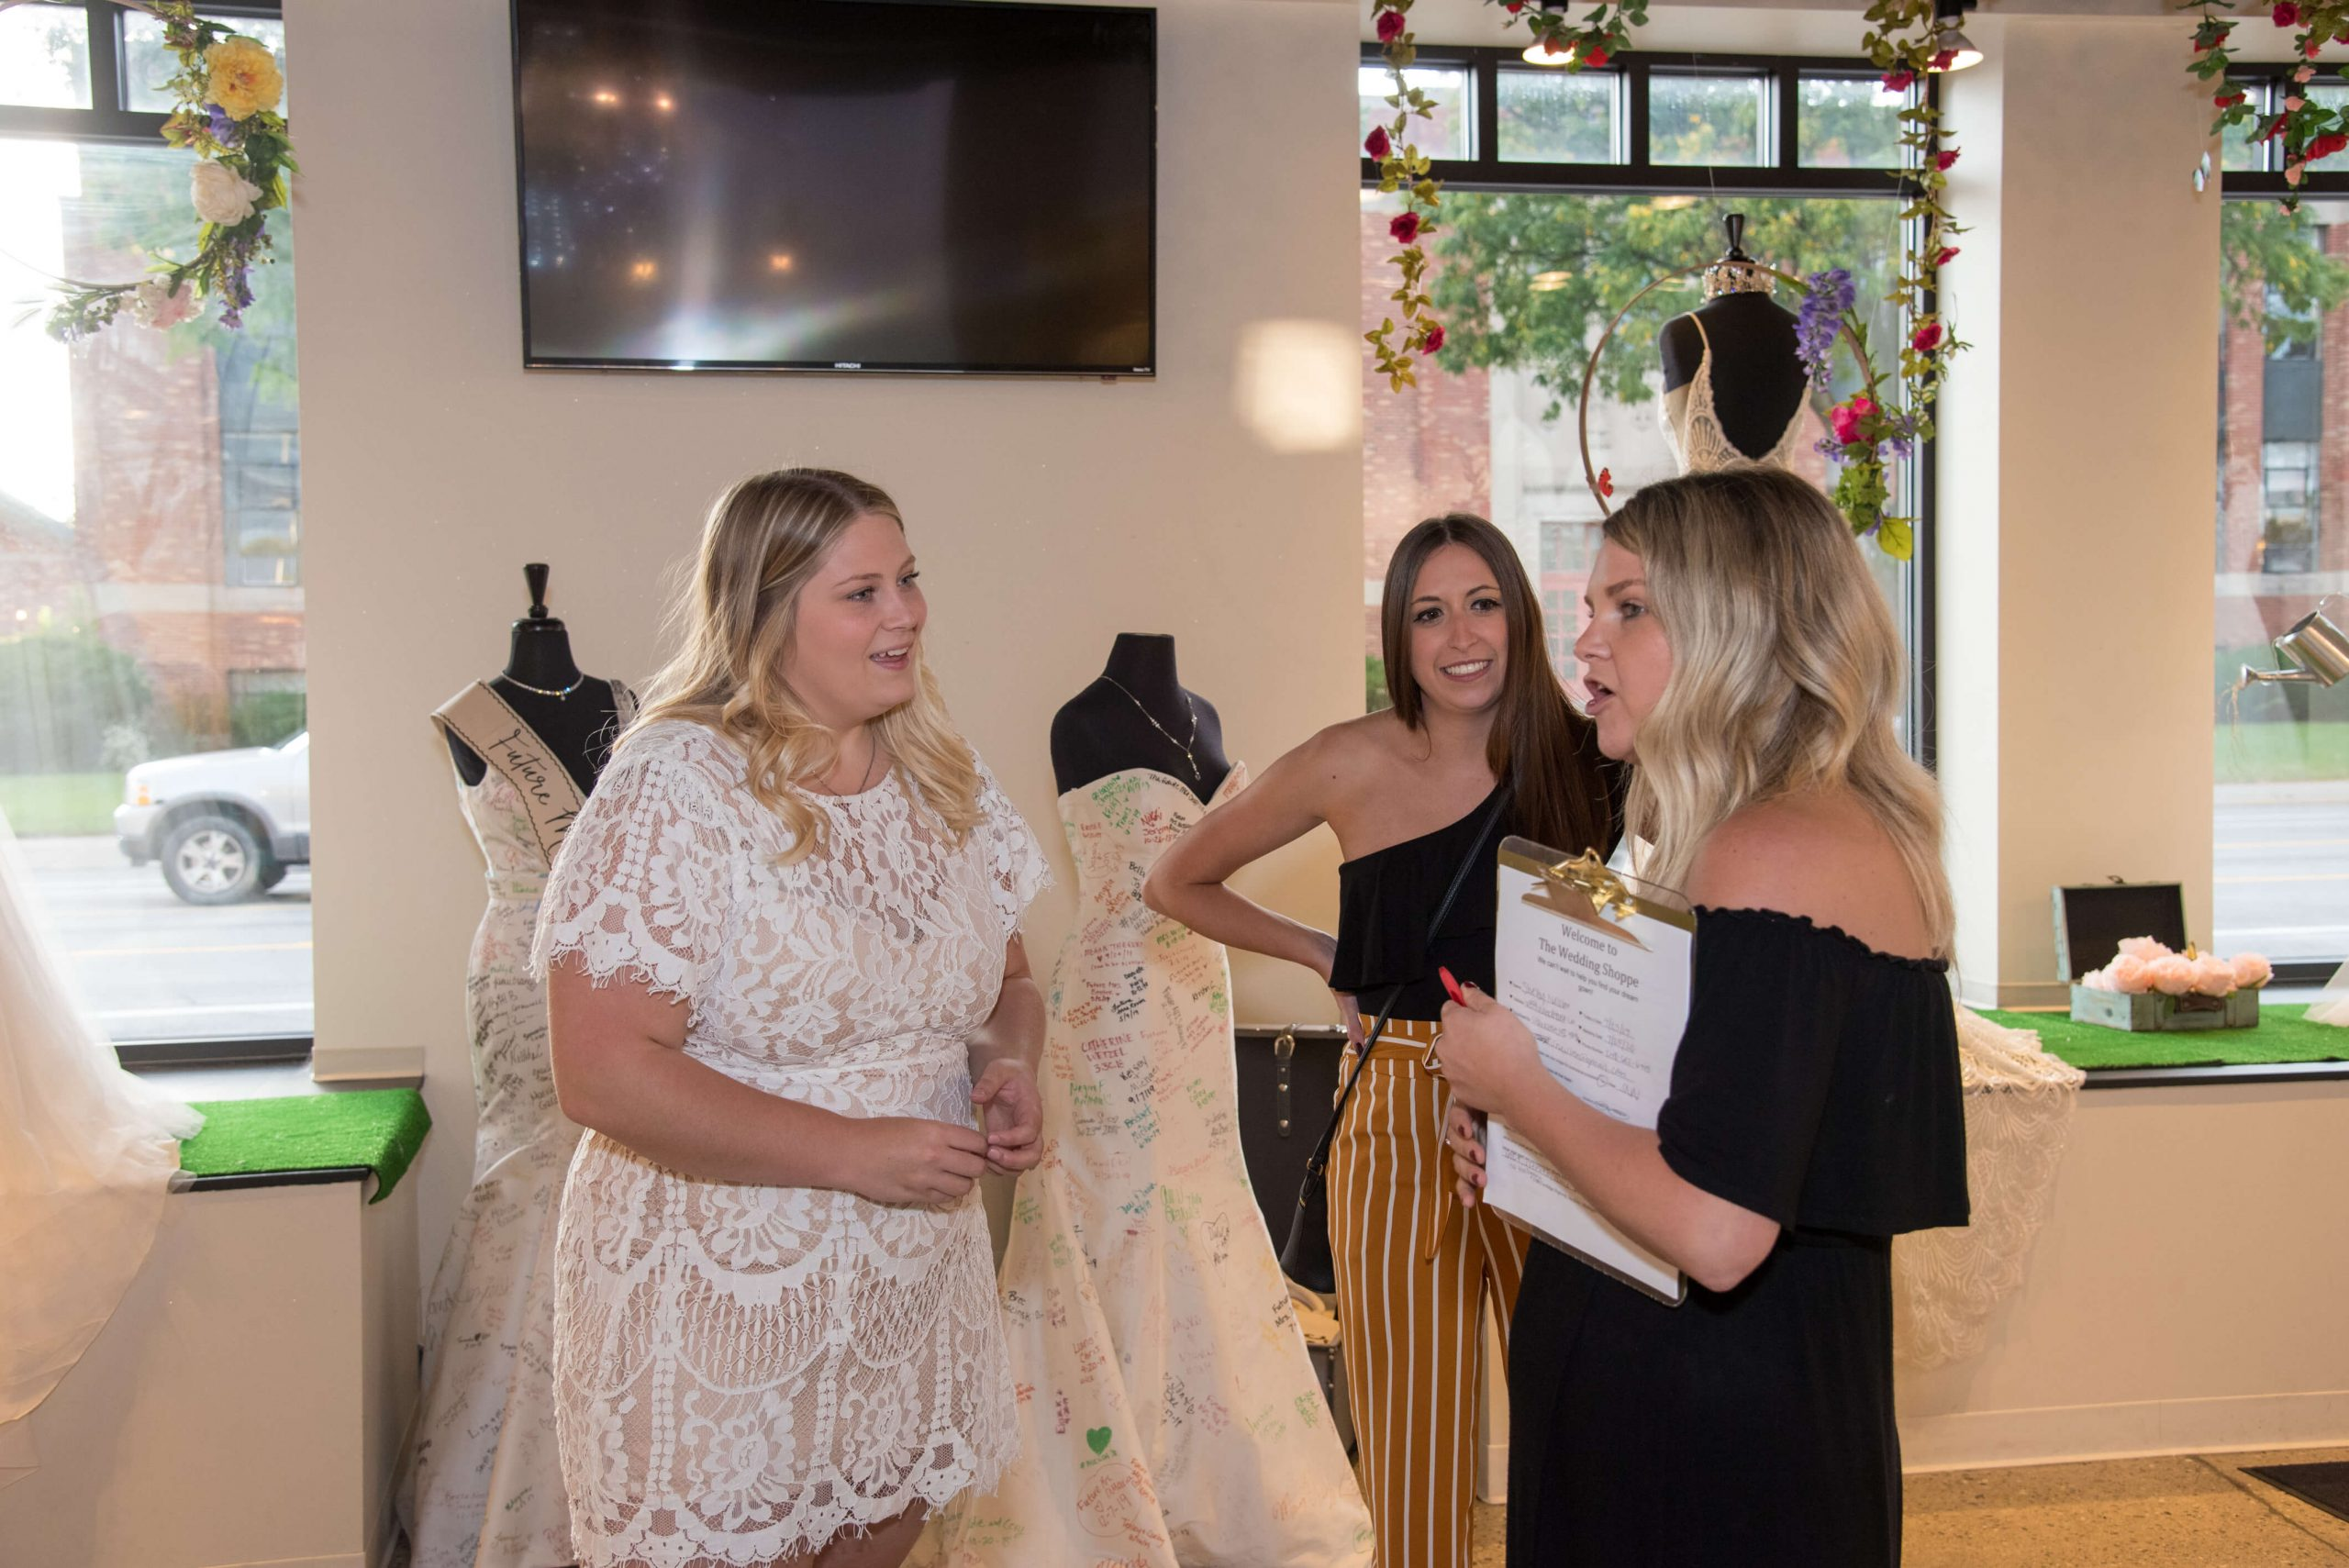 Staff talking with bride